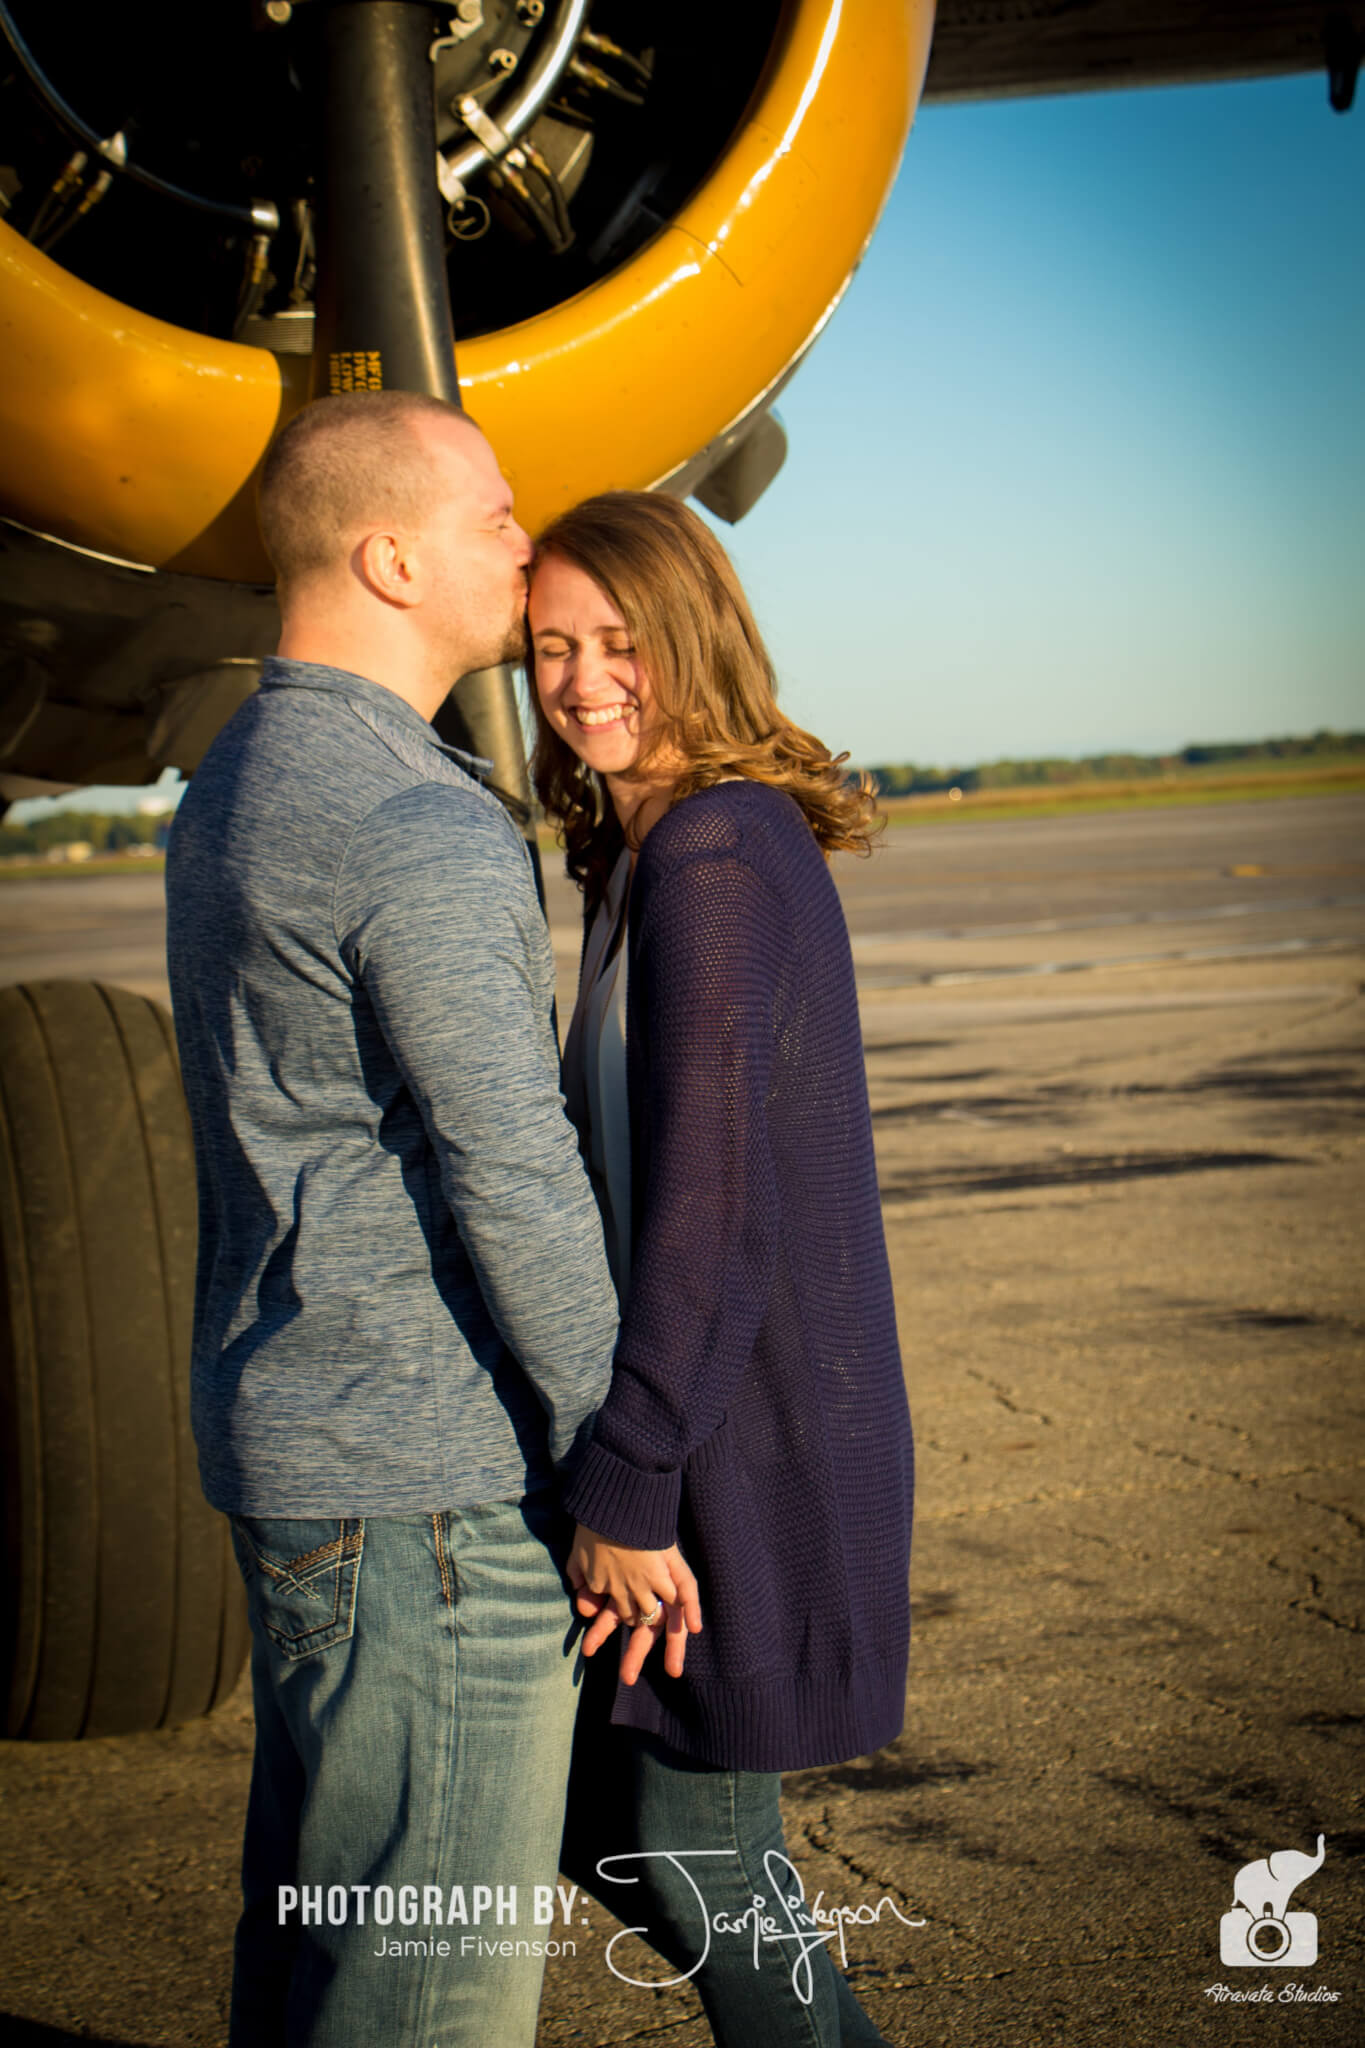 Engagement photography in Ann Arbor, Michigan